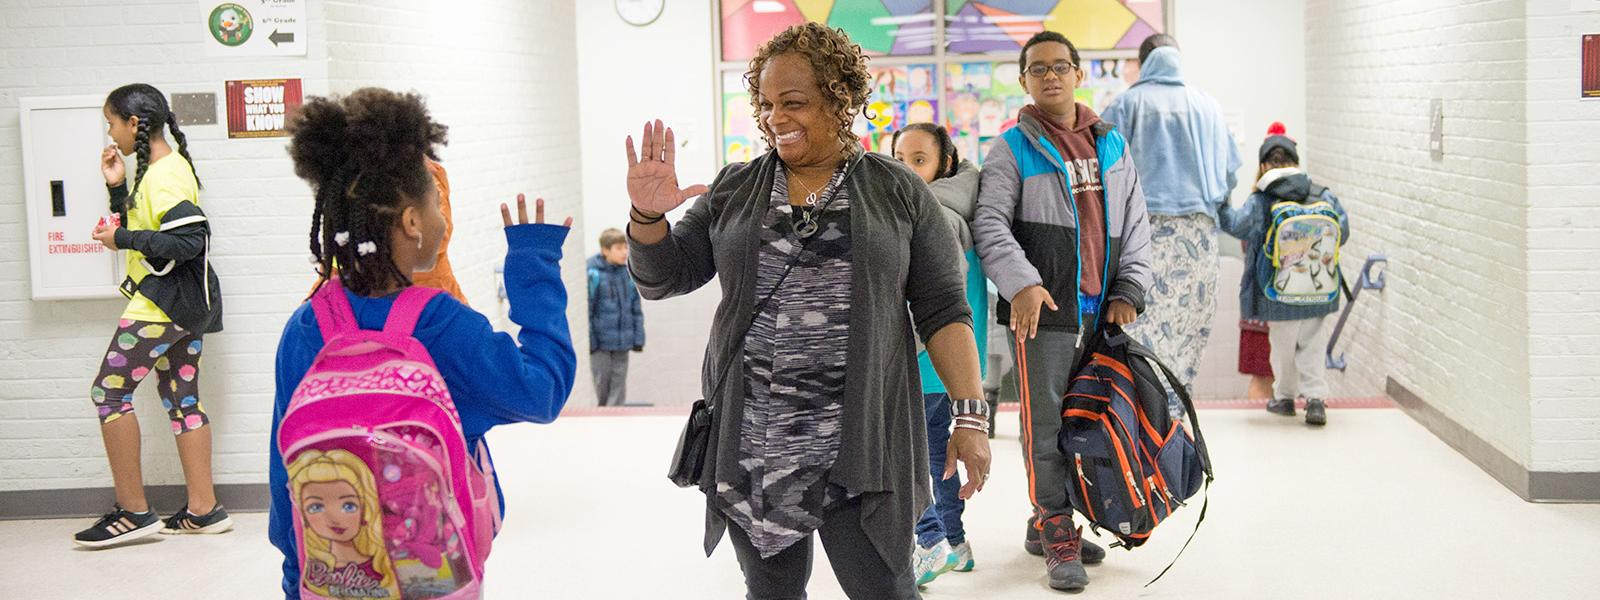 Instructional assistant Laverne Carter greets students with a big smile and a high five when they arrive at Forest Edge Elementary School.